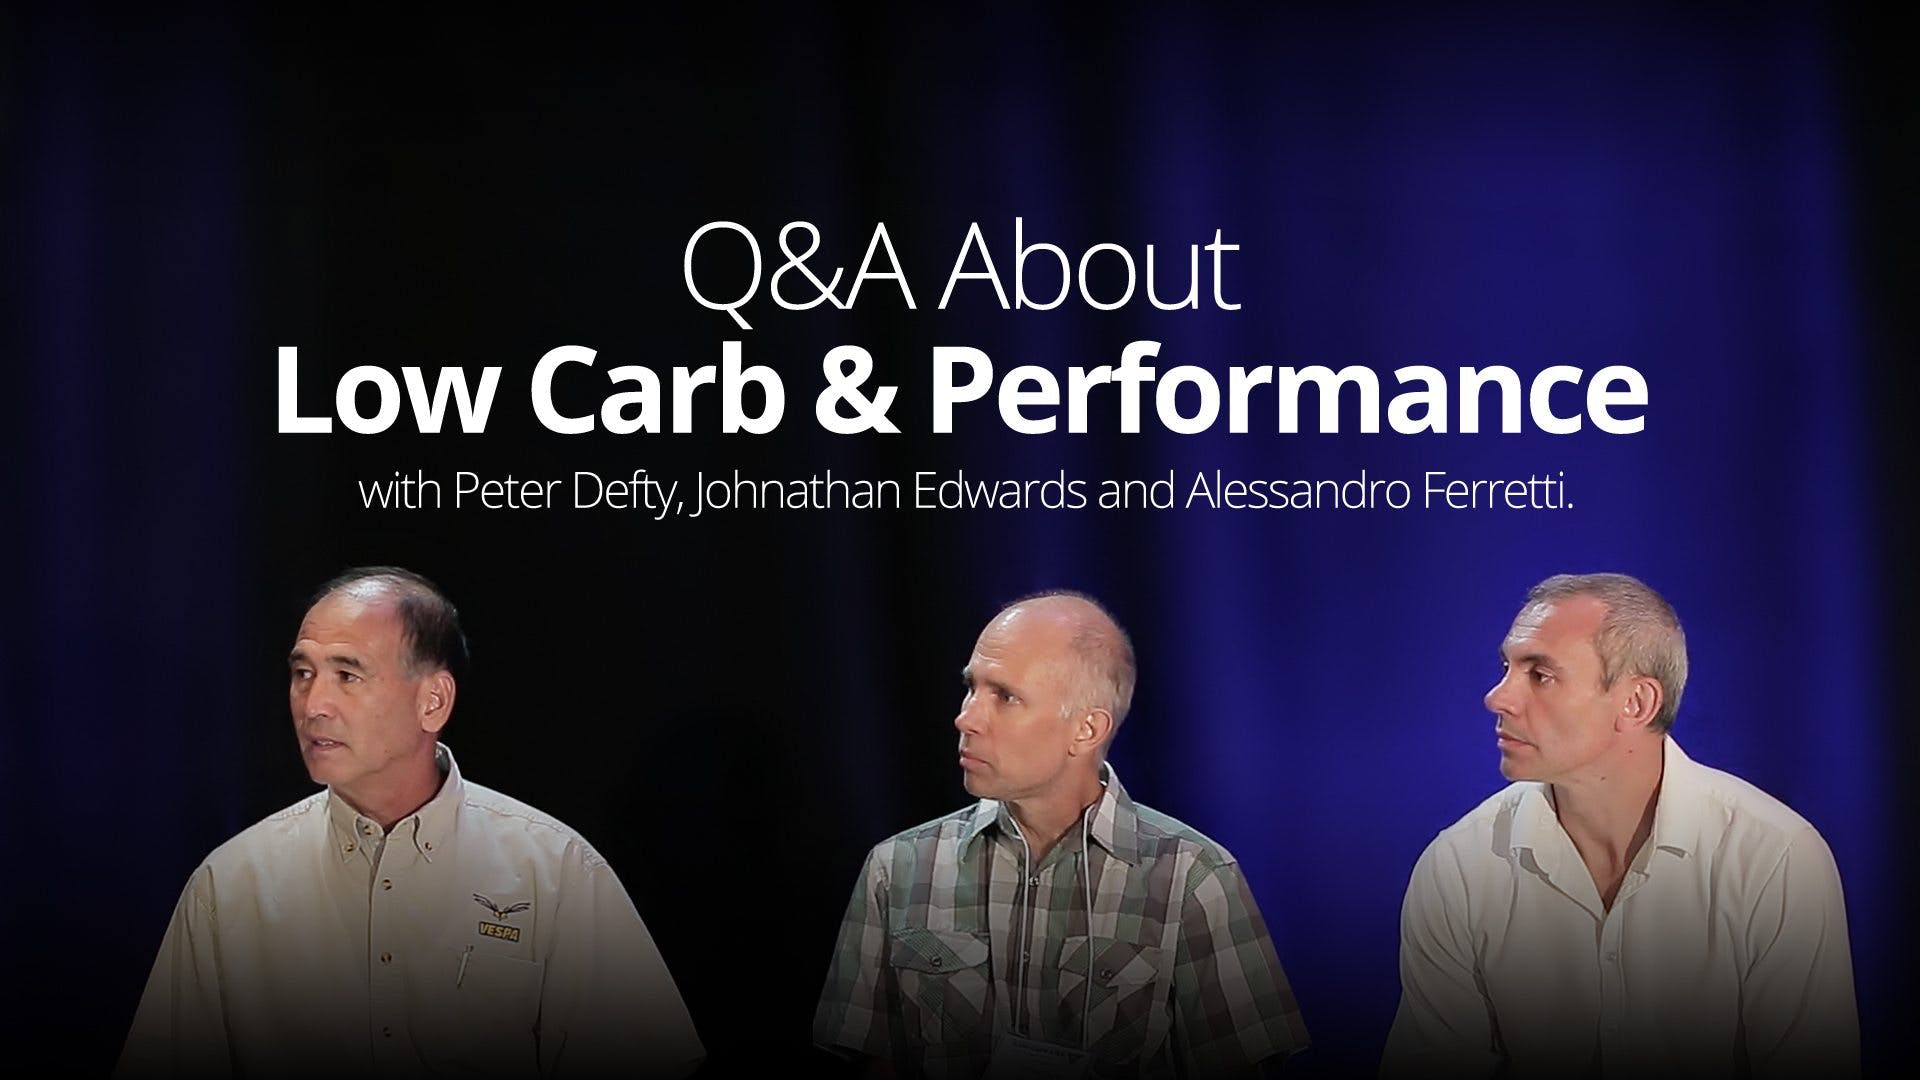 Q&A About Low Carb & Performance